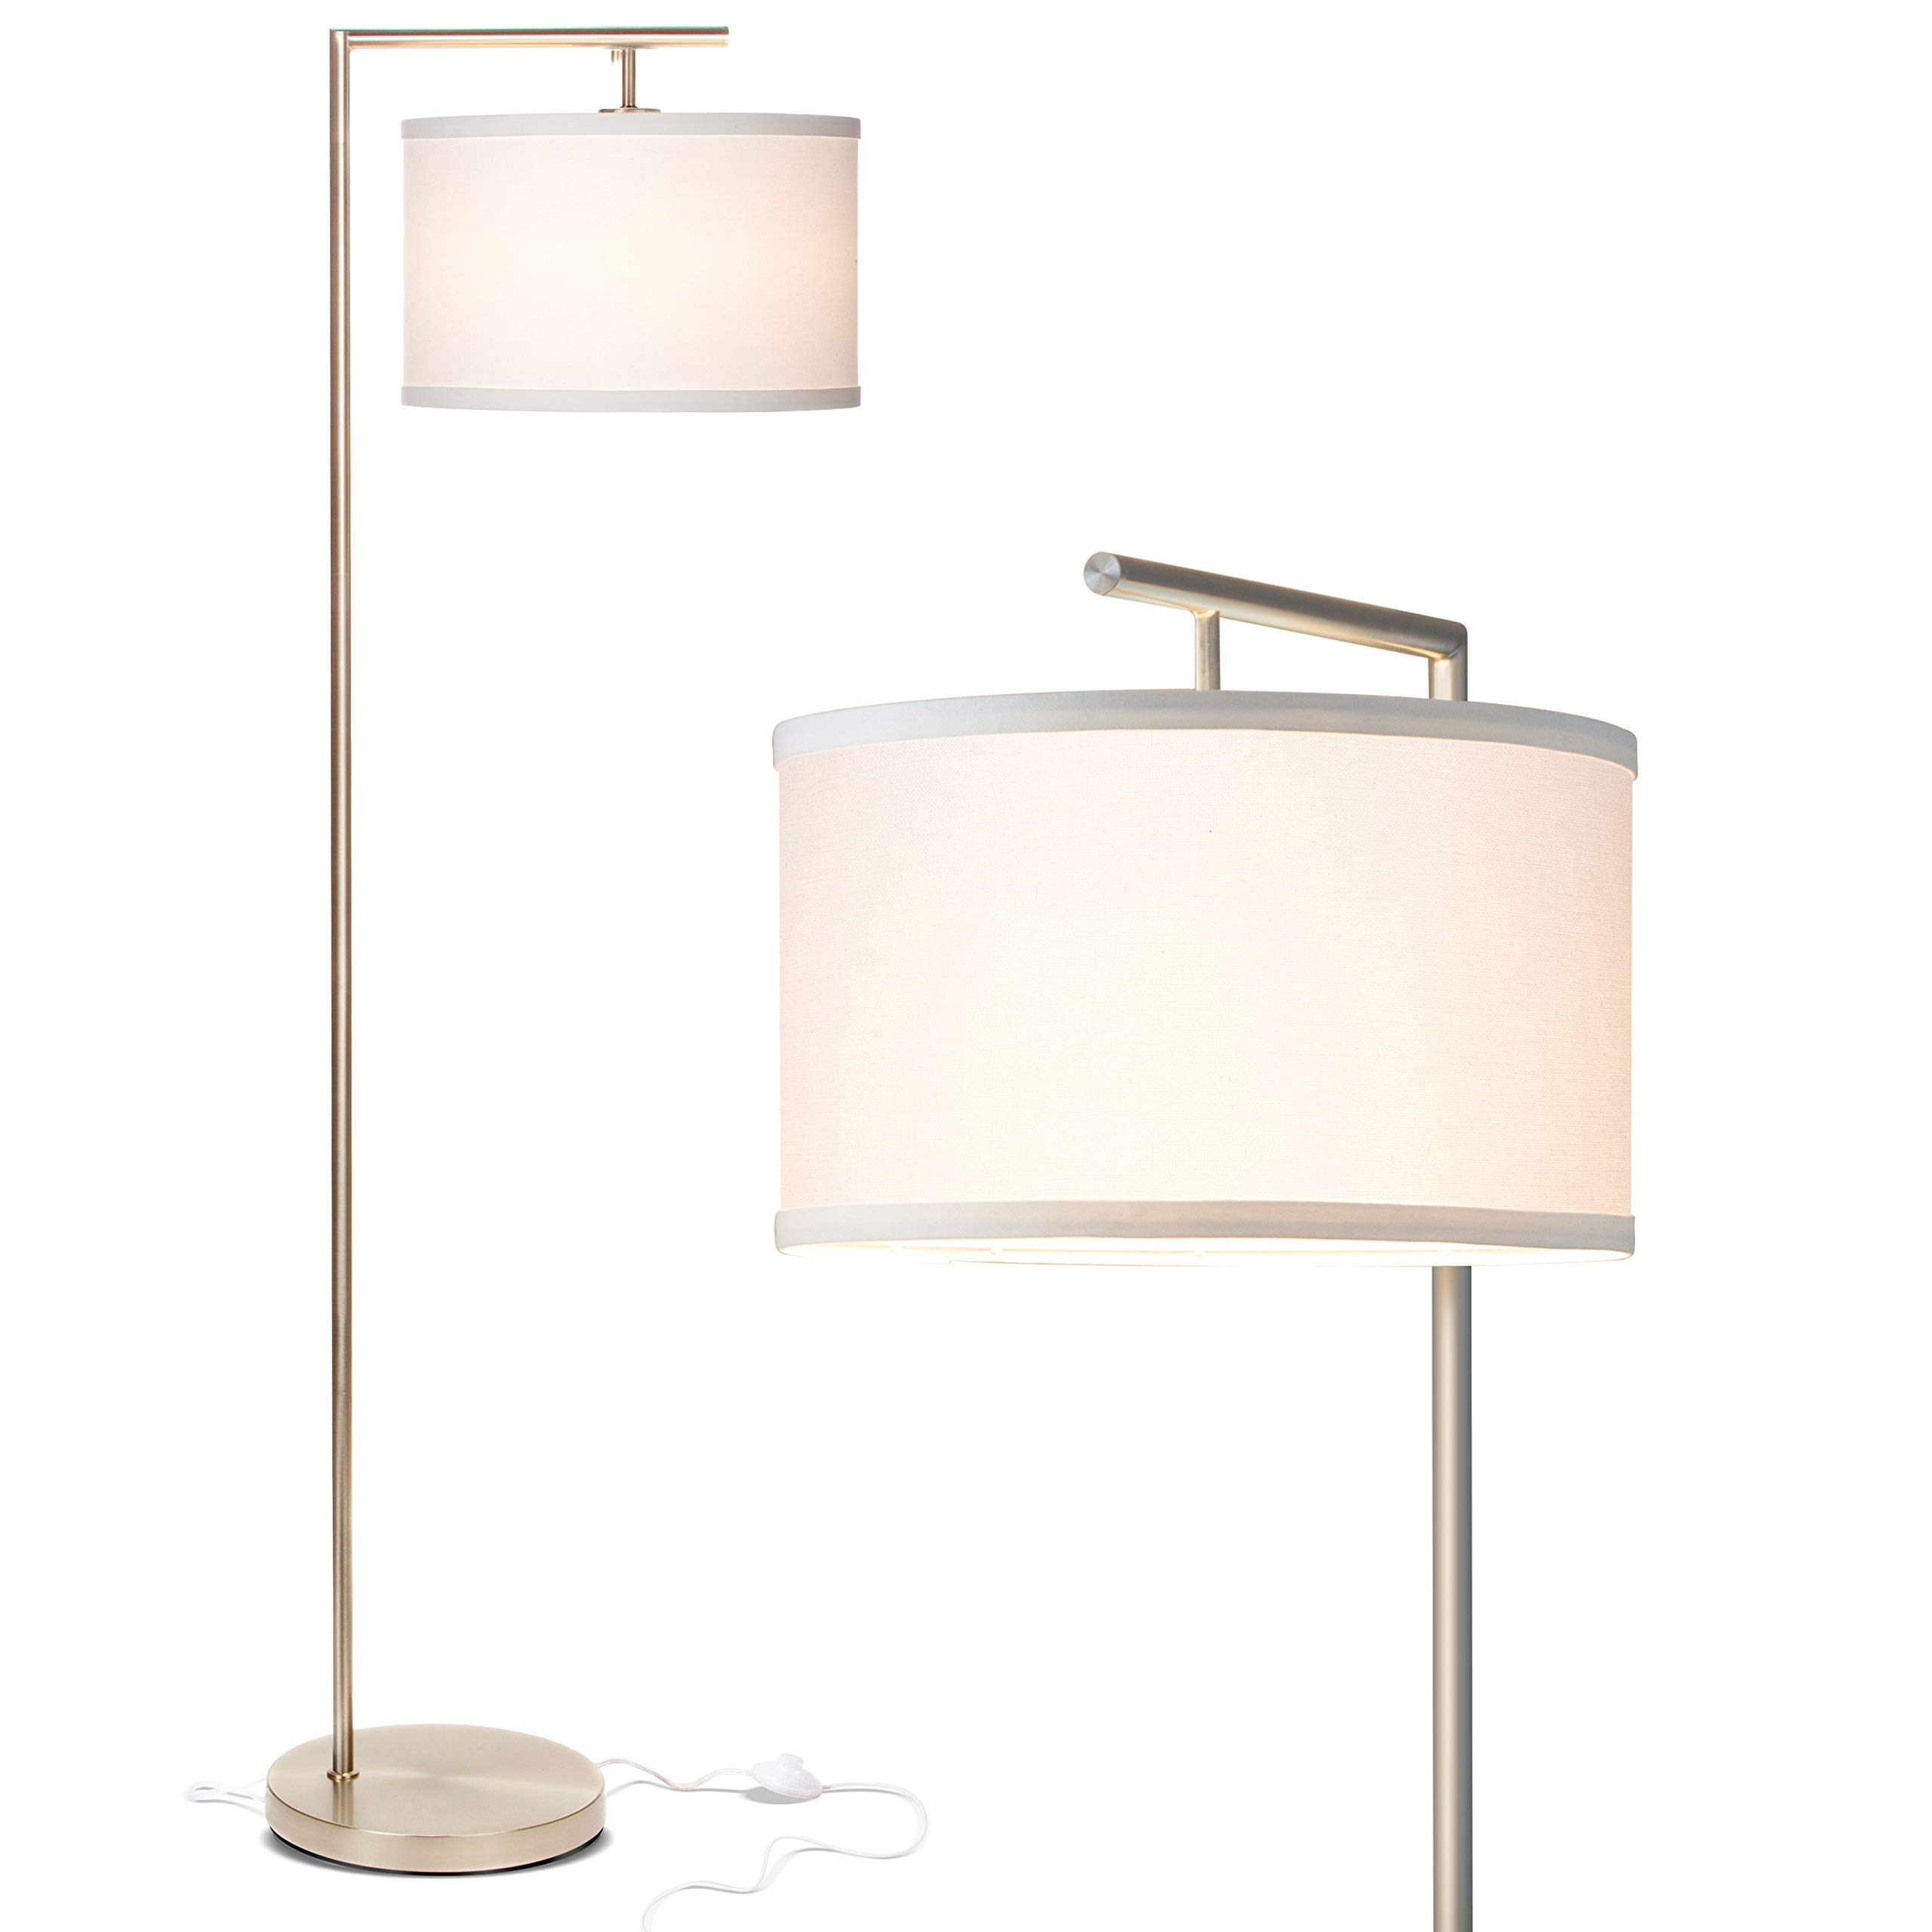 Brightech Montage Modern - LED Floor Lamp for Living Room- Standing Accent Light for Bedrooms, Office - Tall Pole Lamp with Hanging Drum Shade - Satin Nickel by Brightech (Image #1)